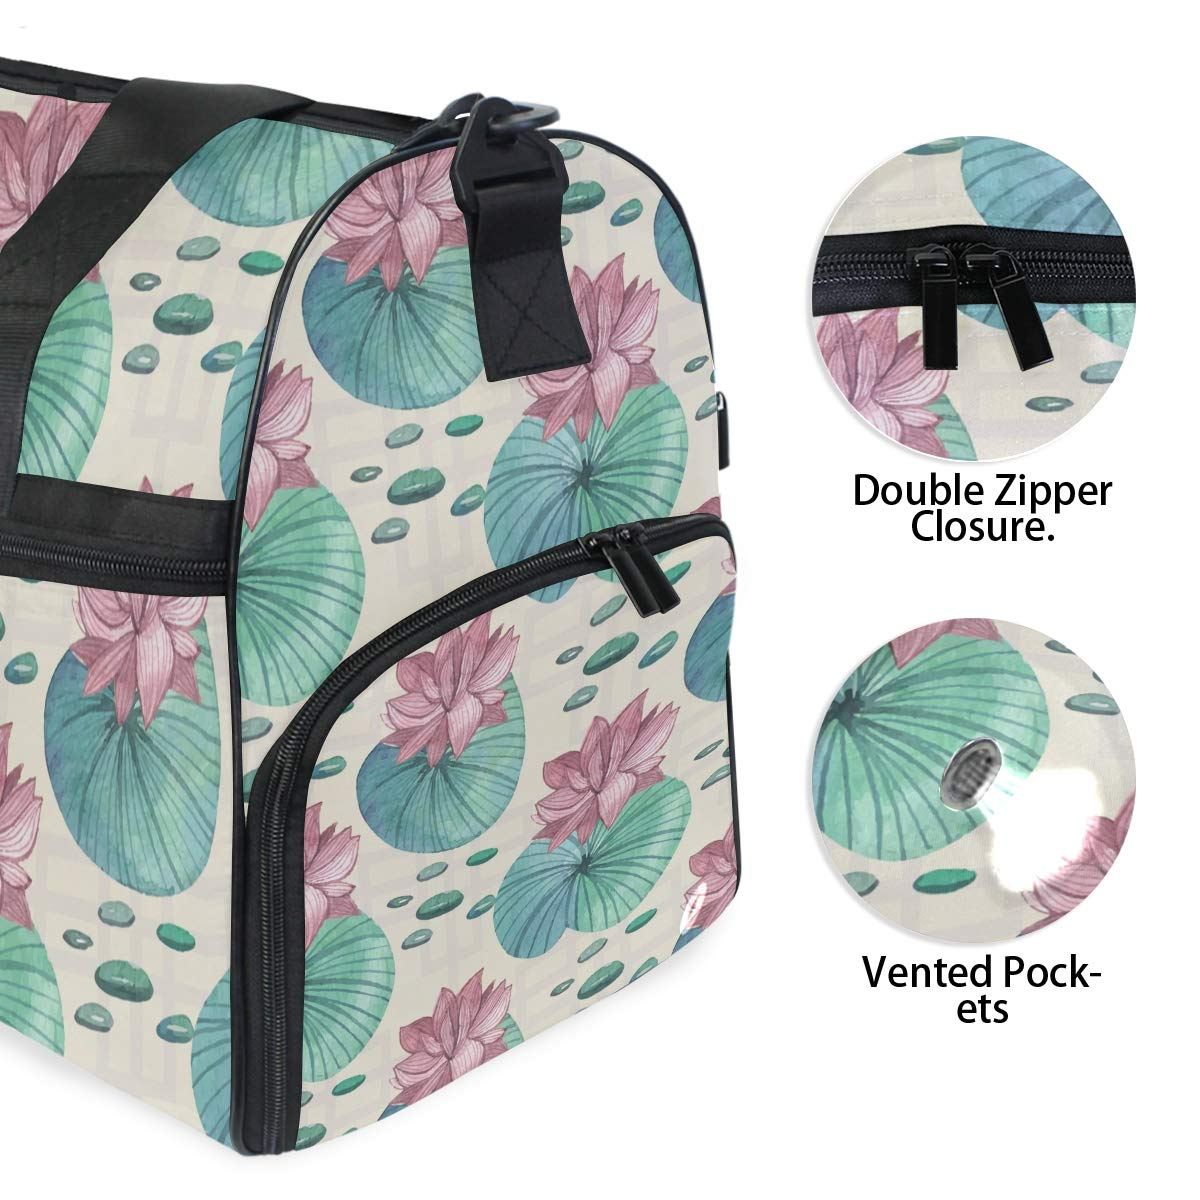 Vacation Gym Travel Duffel Bag Pink Lotus Waterproof Lightweight Luggage bag for Sports